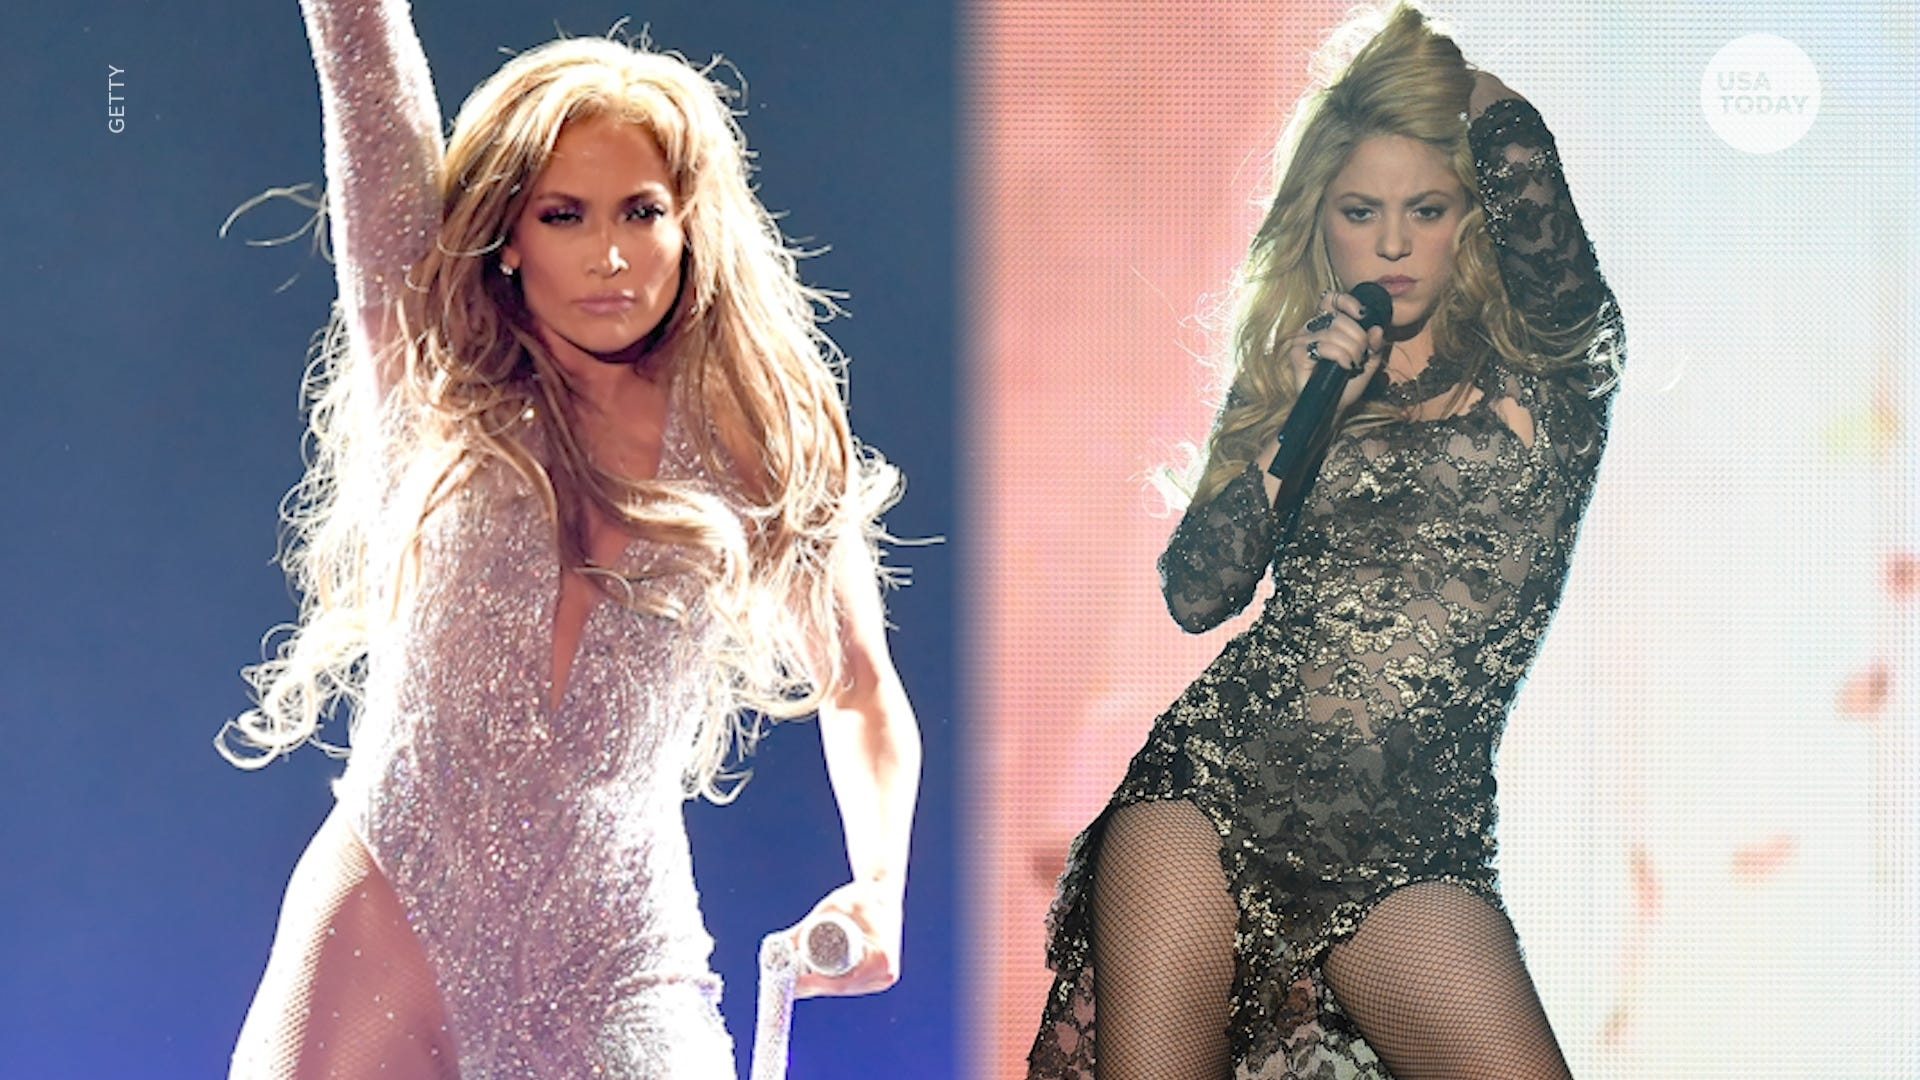 Super Bowl: Jennifer Lopez, Shakira To Perform At 2020 within Super Bowl Halftime Show 2020